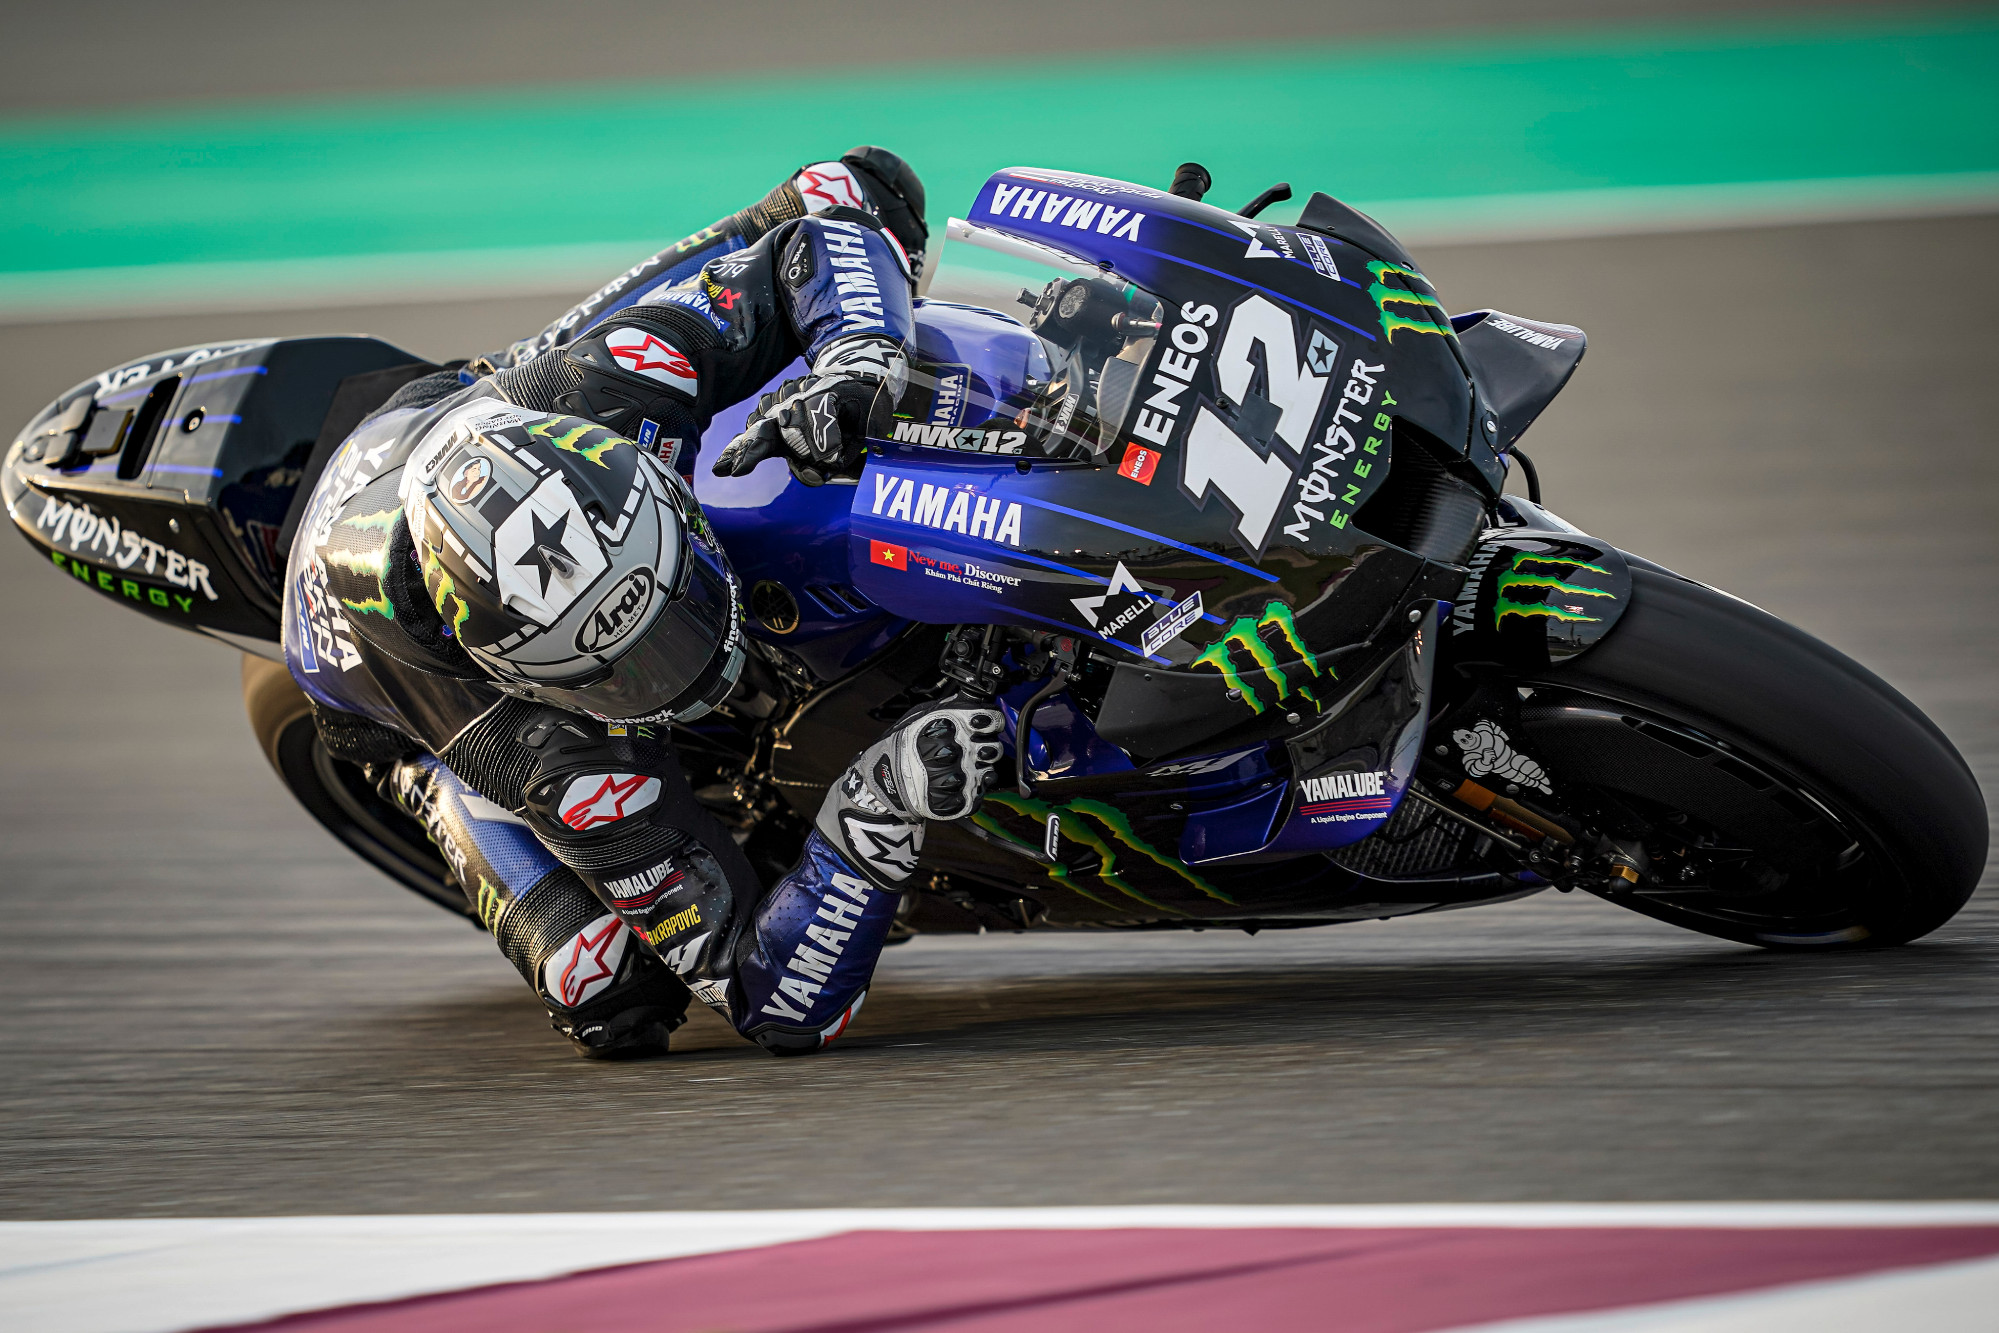 Why inline-four MotoGP bikes handle better than V4 MotoGP bikes